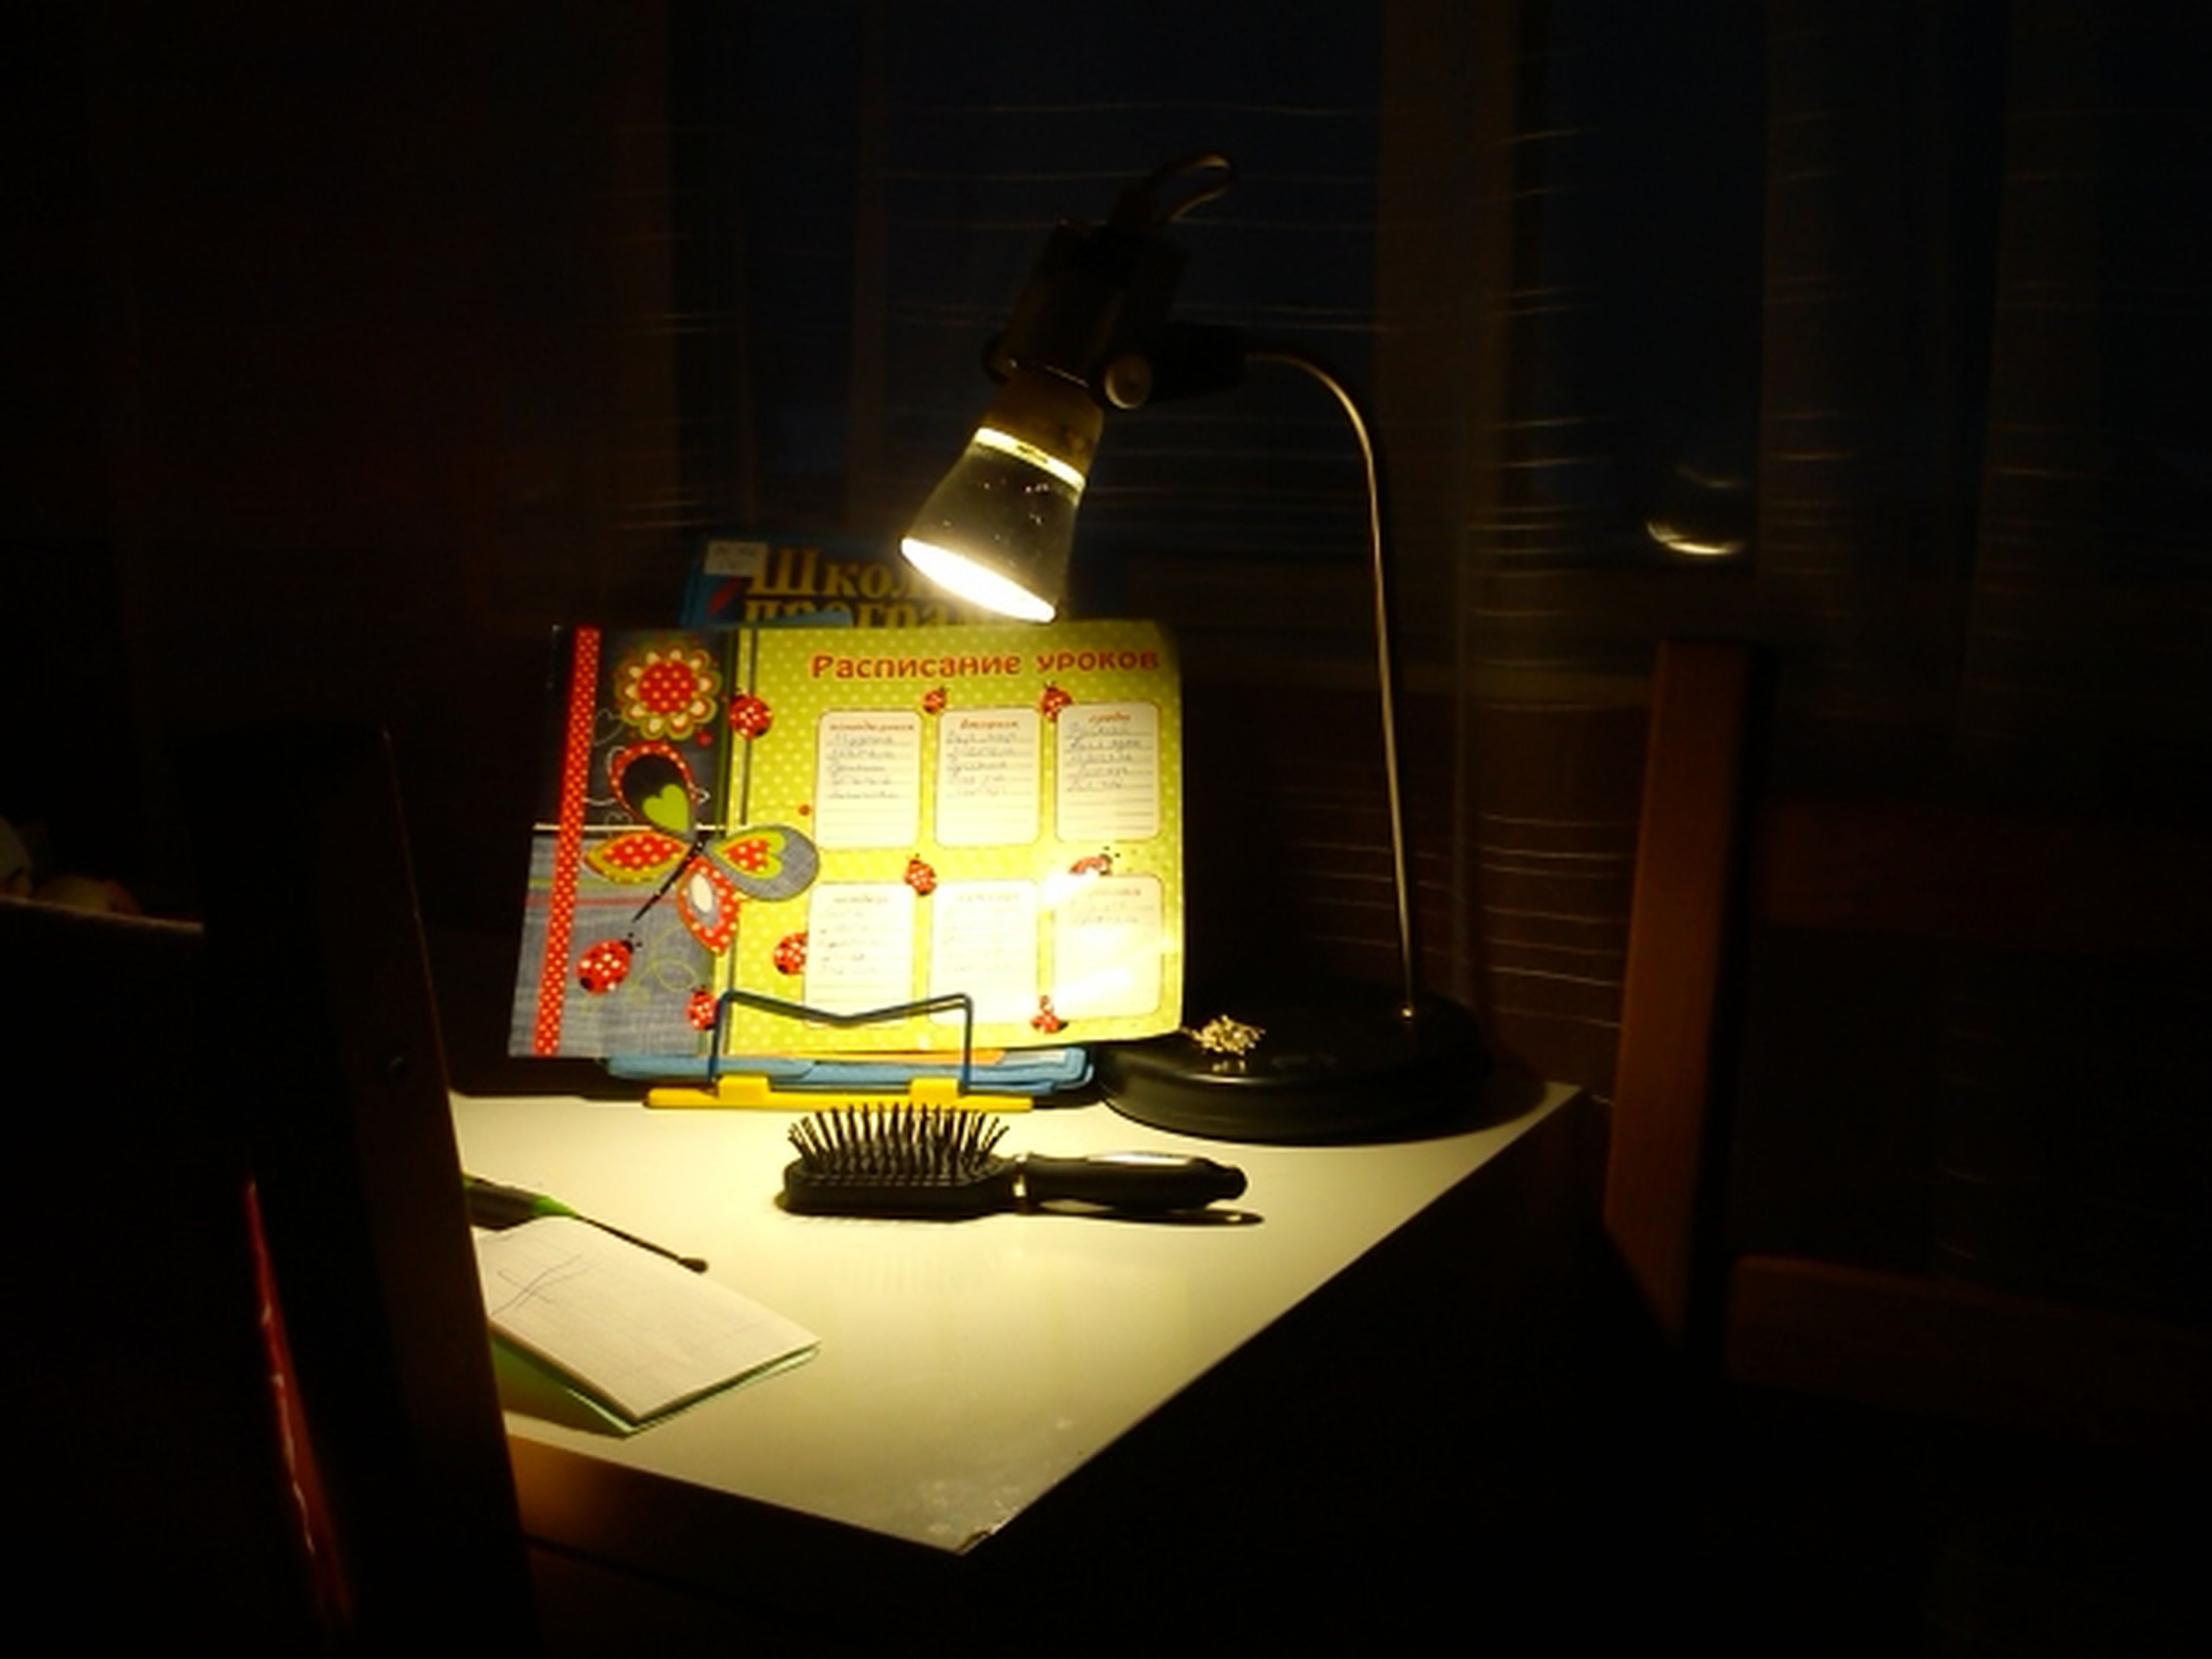 indoors, illuminated, lighting equipment, electric lamp, home interior, table, night, architecture, lamp, dark, window, built structure, light - natural phenomenon, decoration, electricity, electric light, lit, darkroom, glowing, hanging